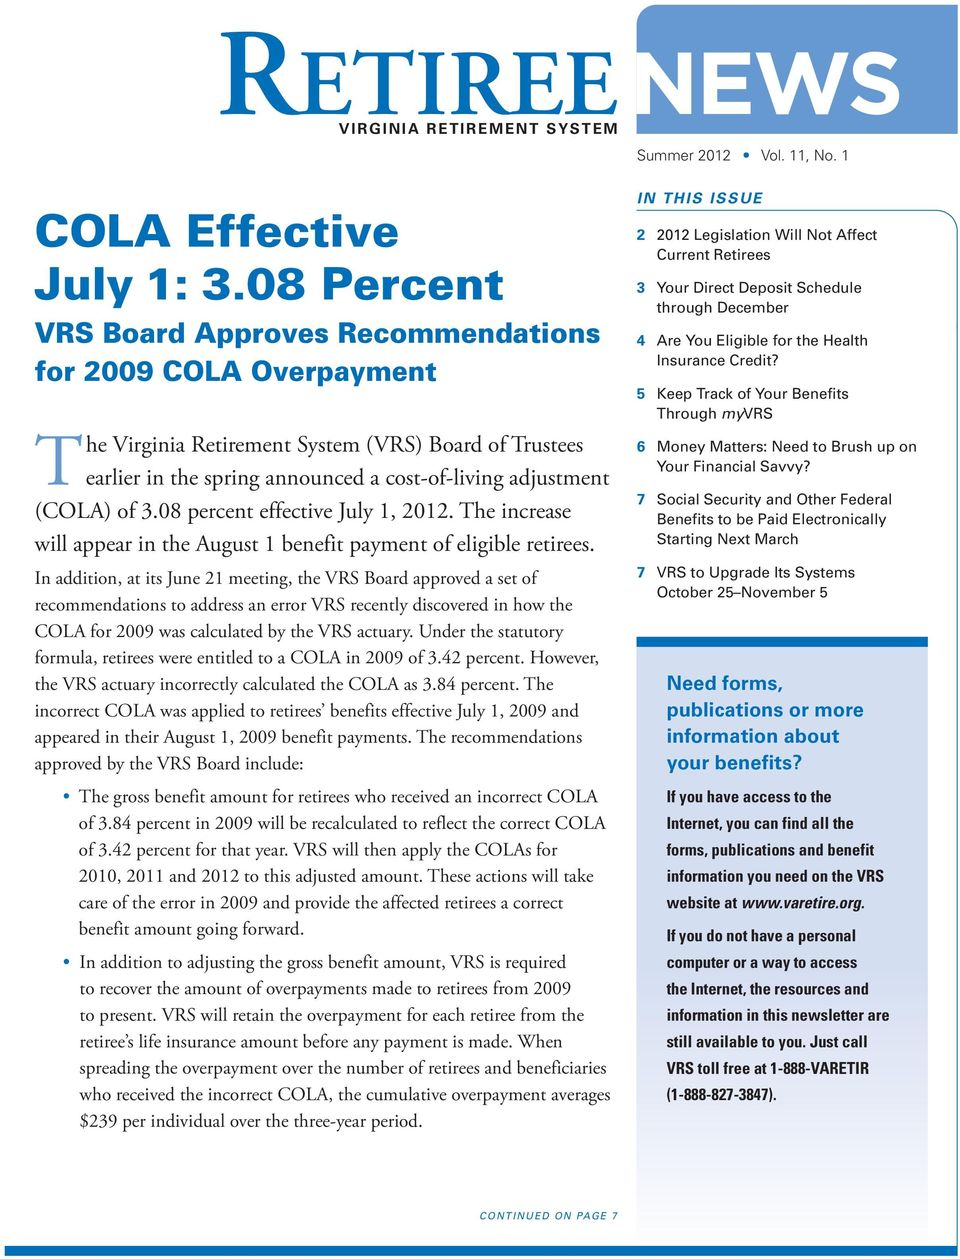 08 percent effective July 1, 2012. The increase will appear in the August 1 benefit payment of eligible retirees.